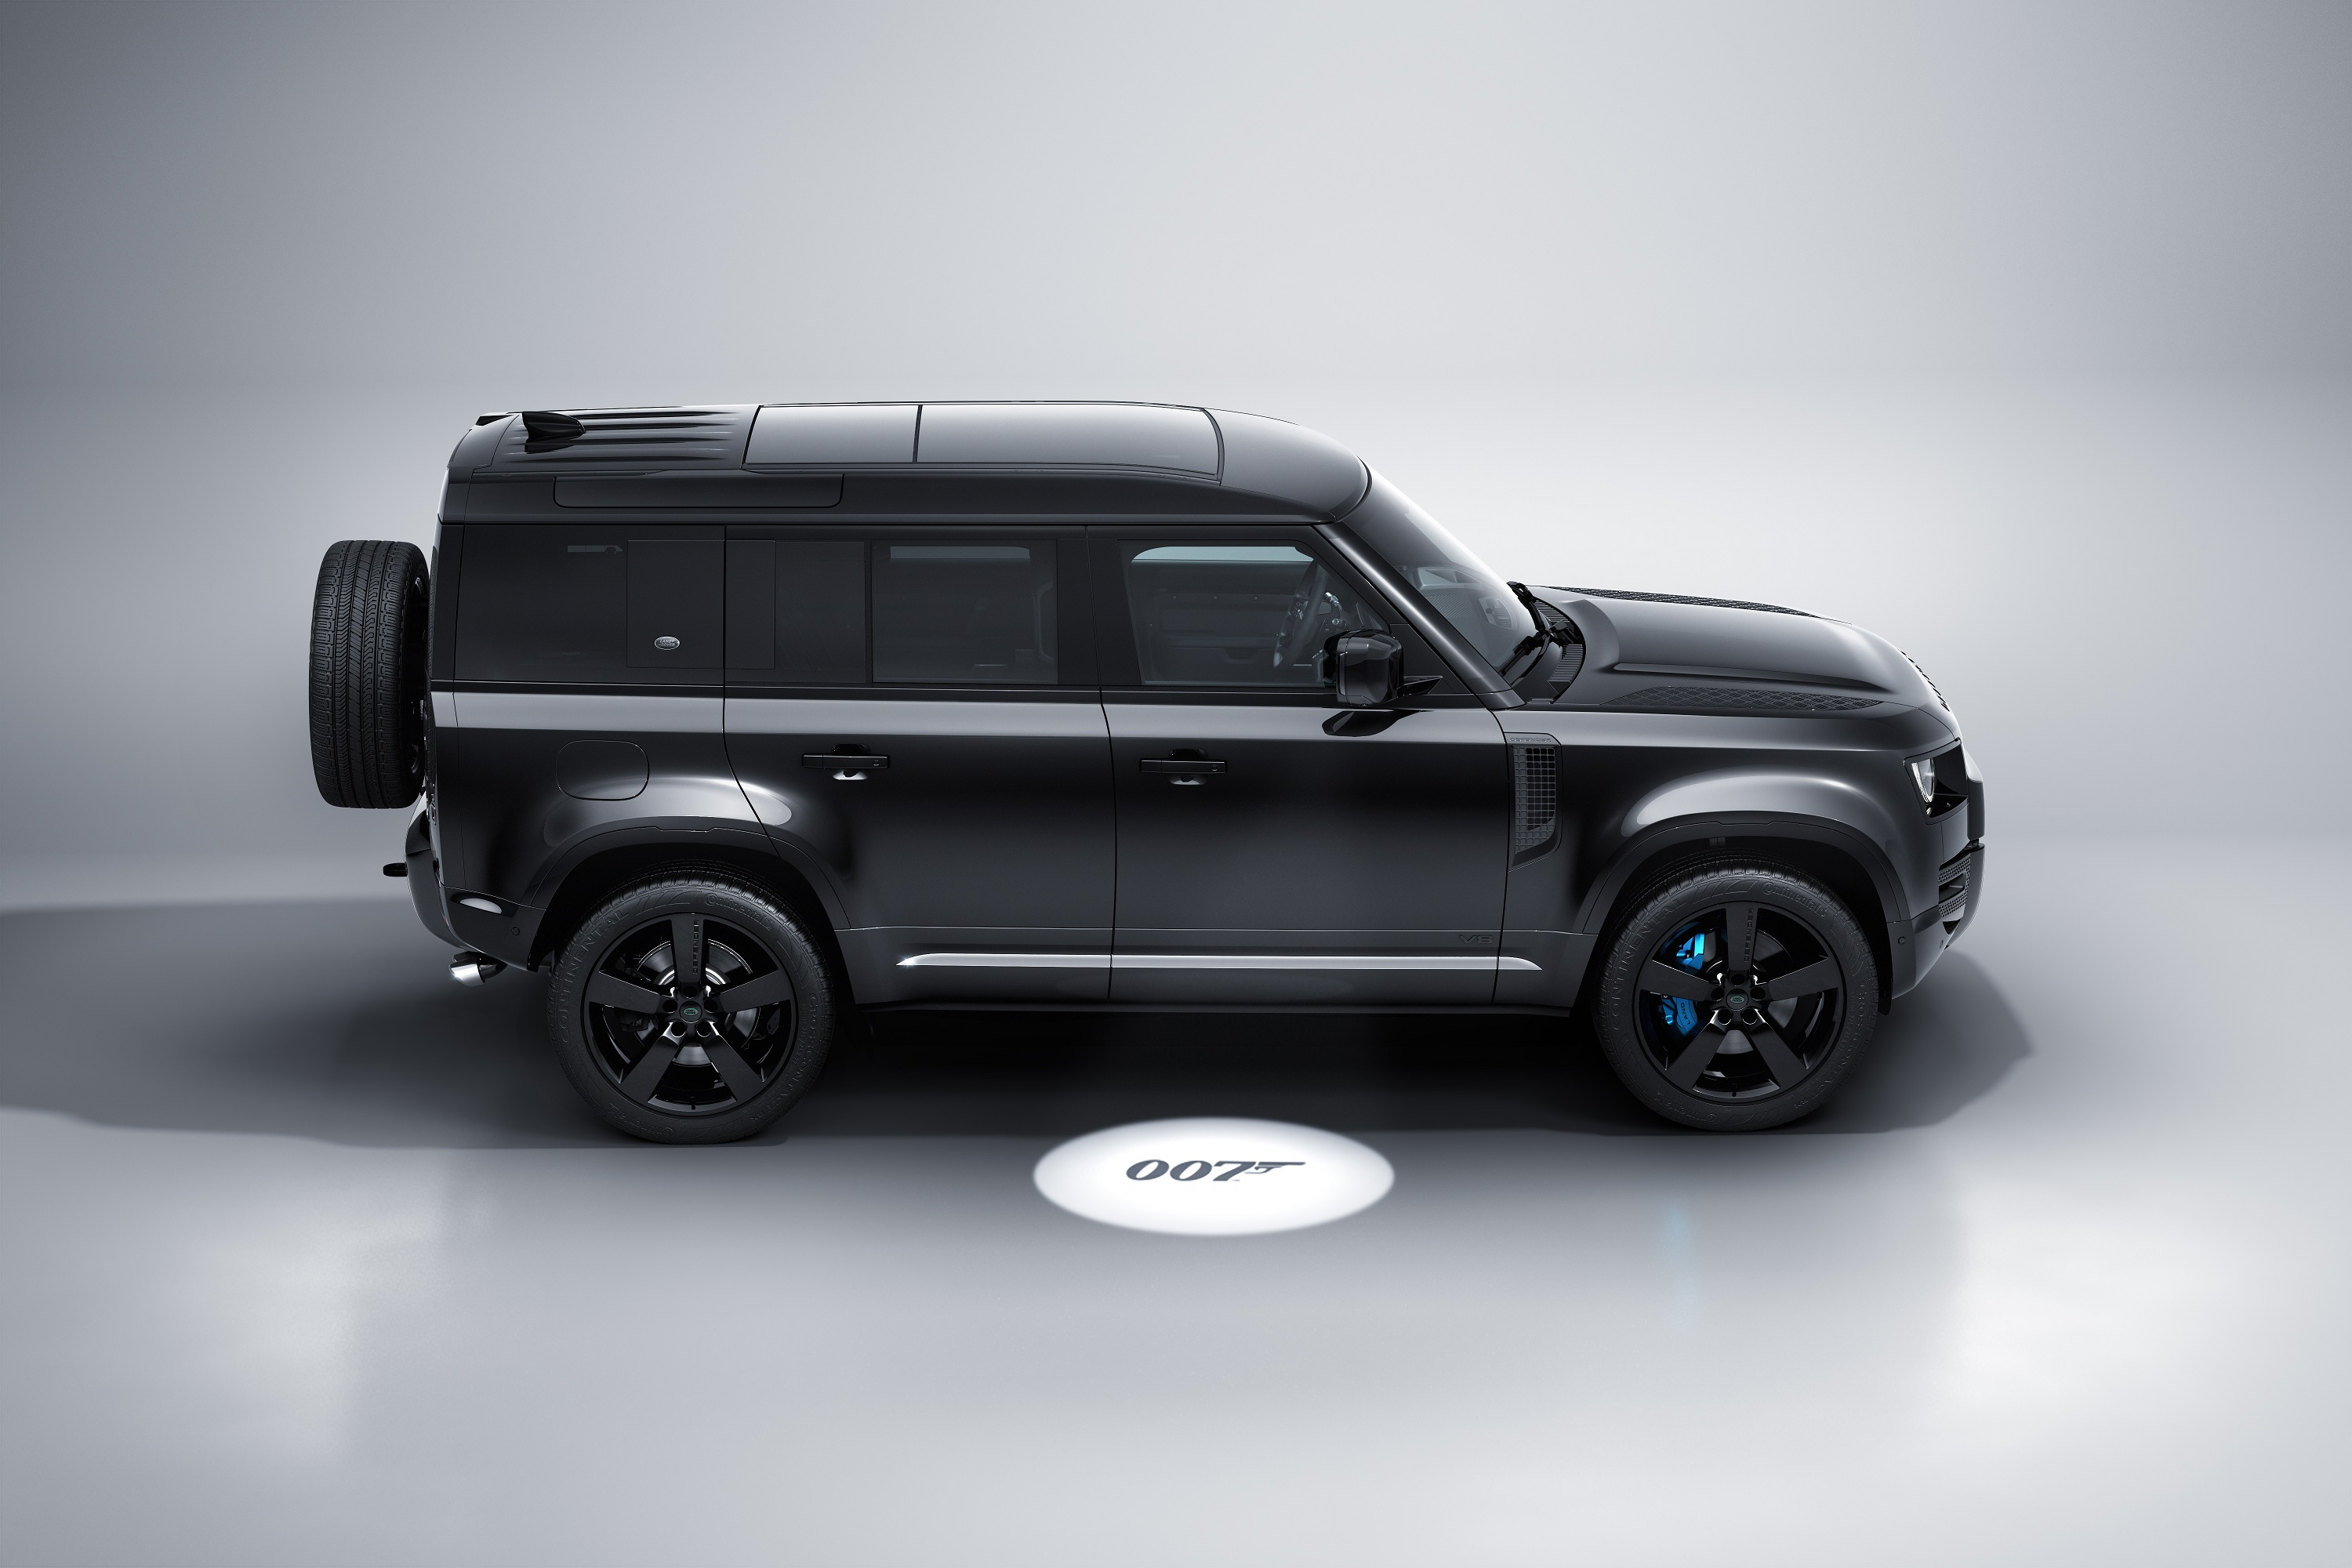 New Land Rover Defender V8 Bond Edition Inspired By 'No Time To Die'